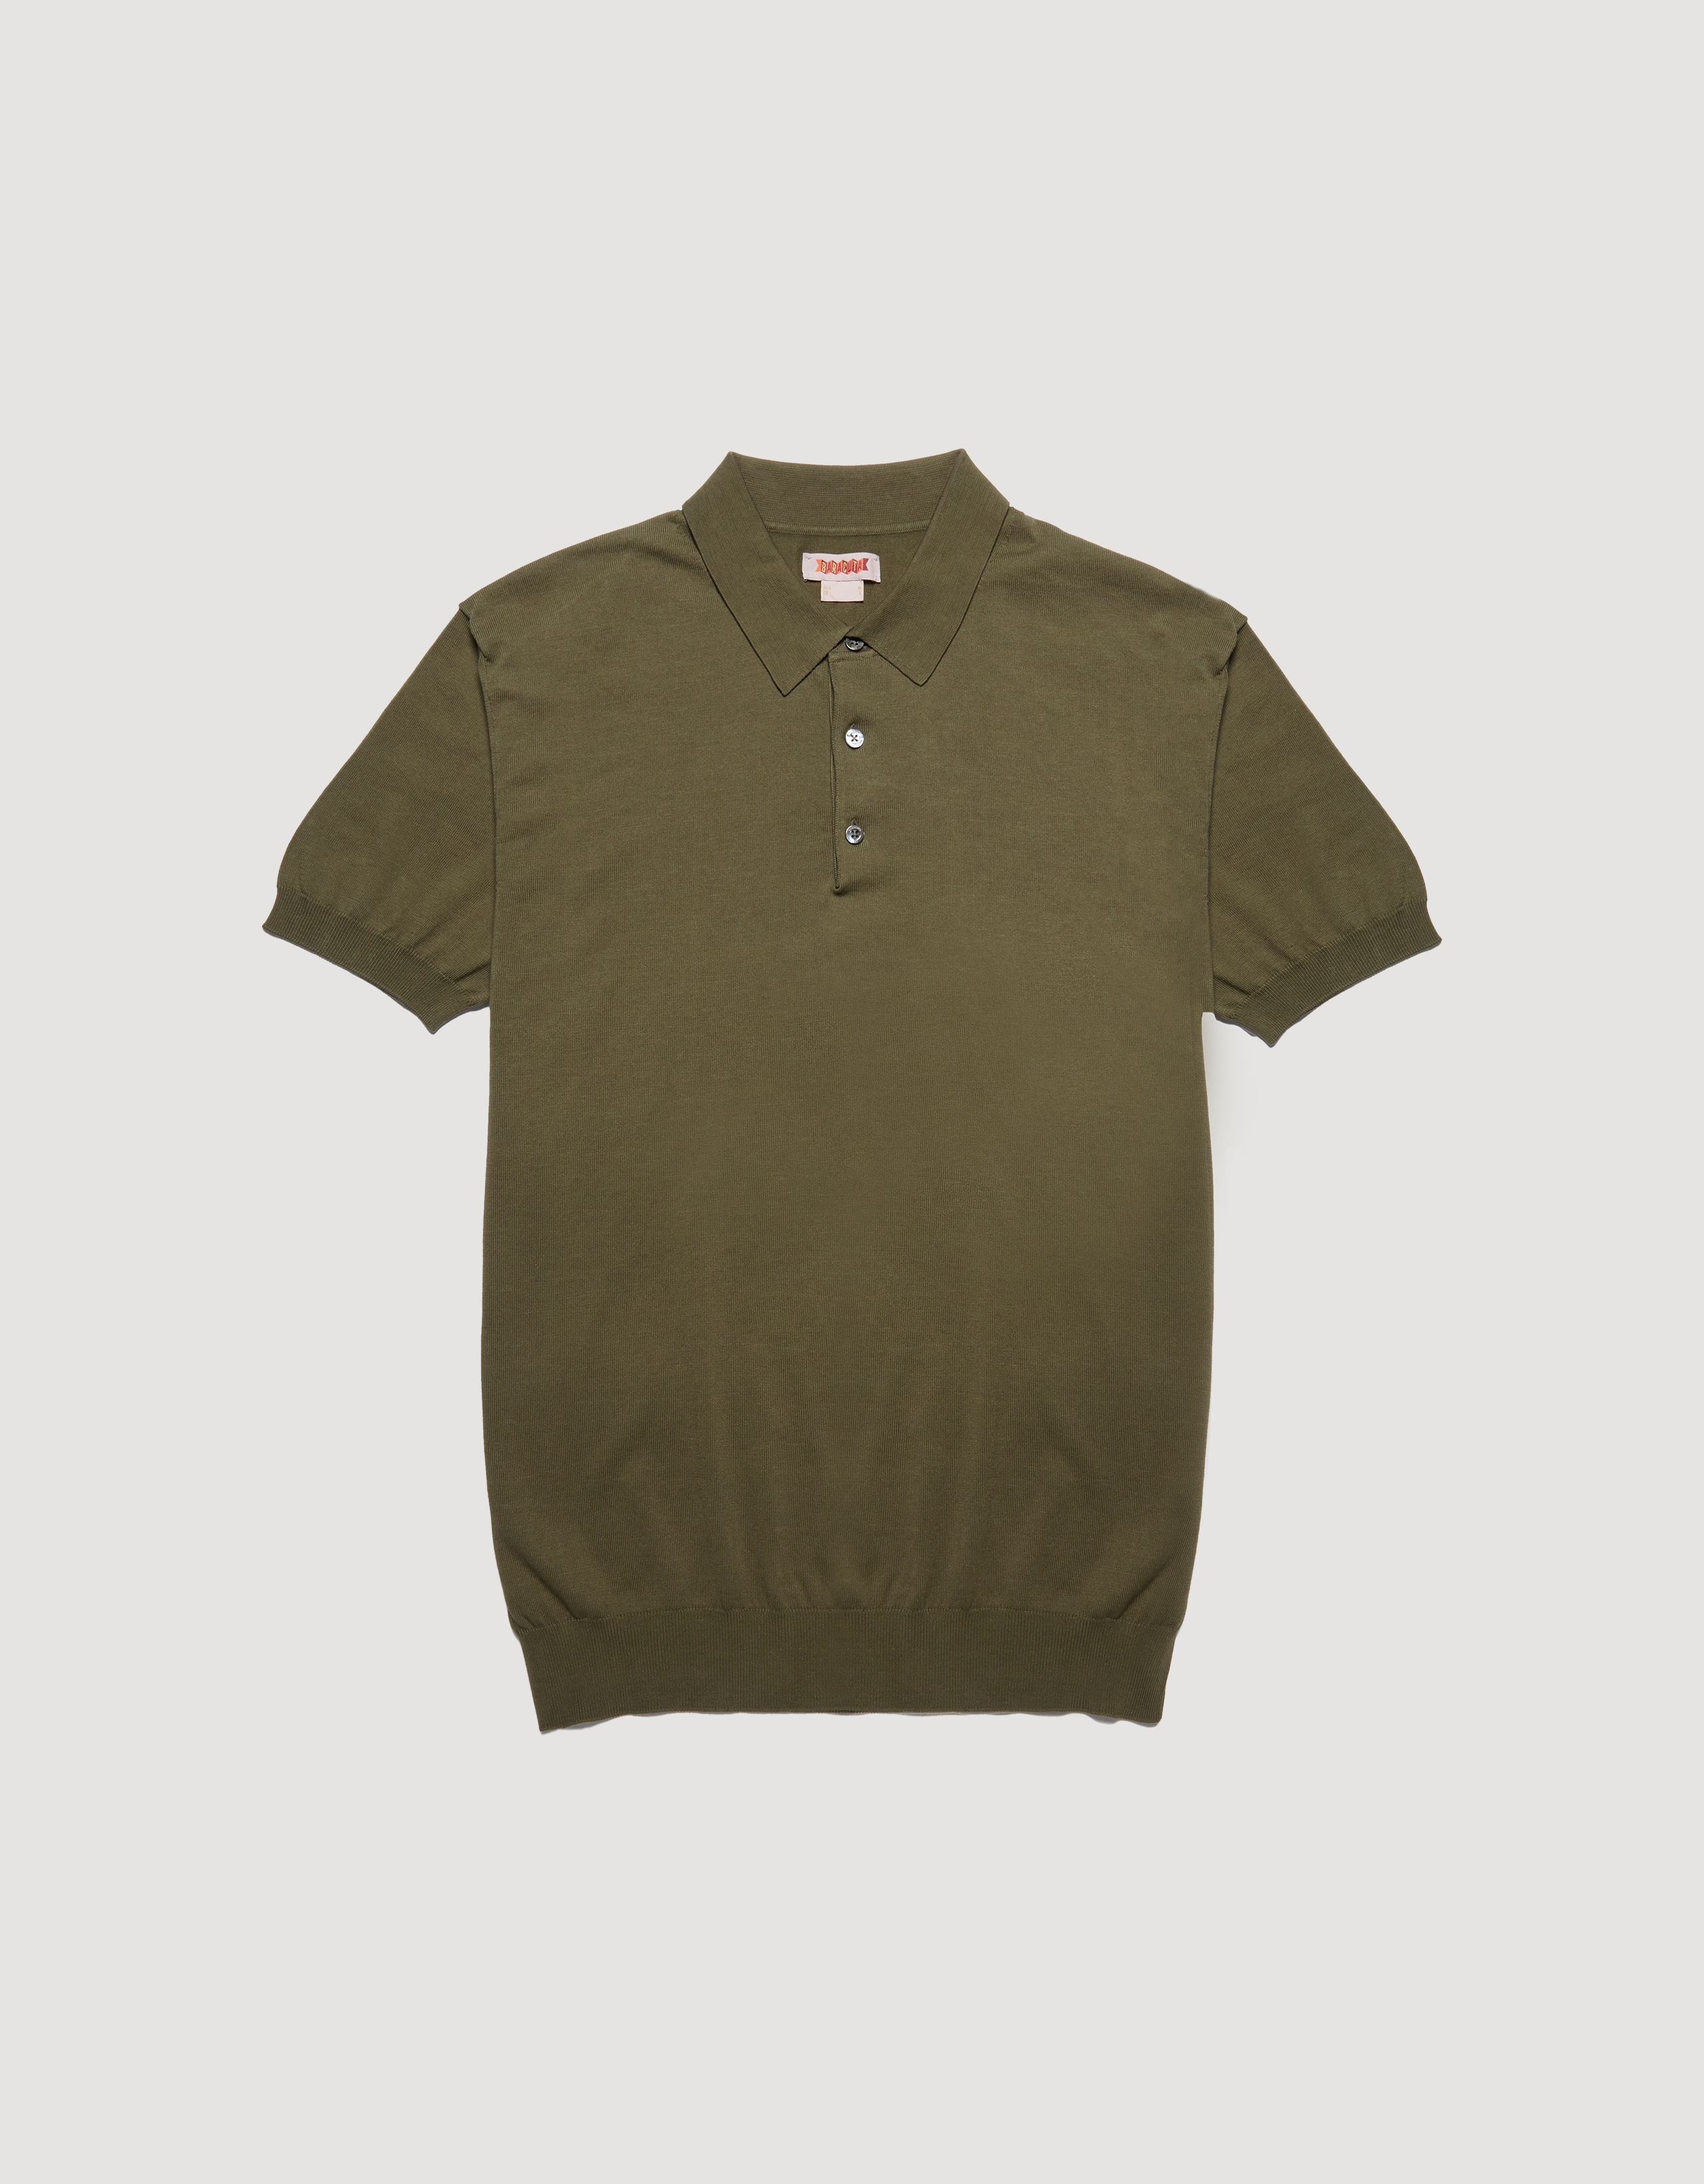 BARACUTA Ss Polo Knit Military Olive 5